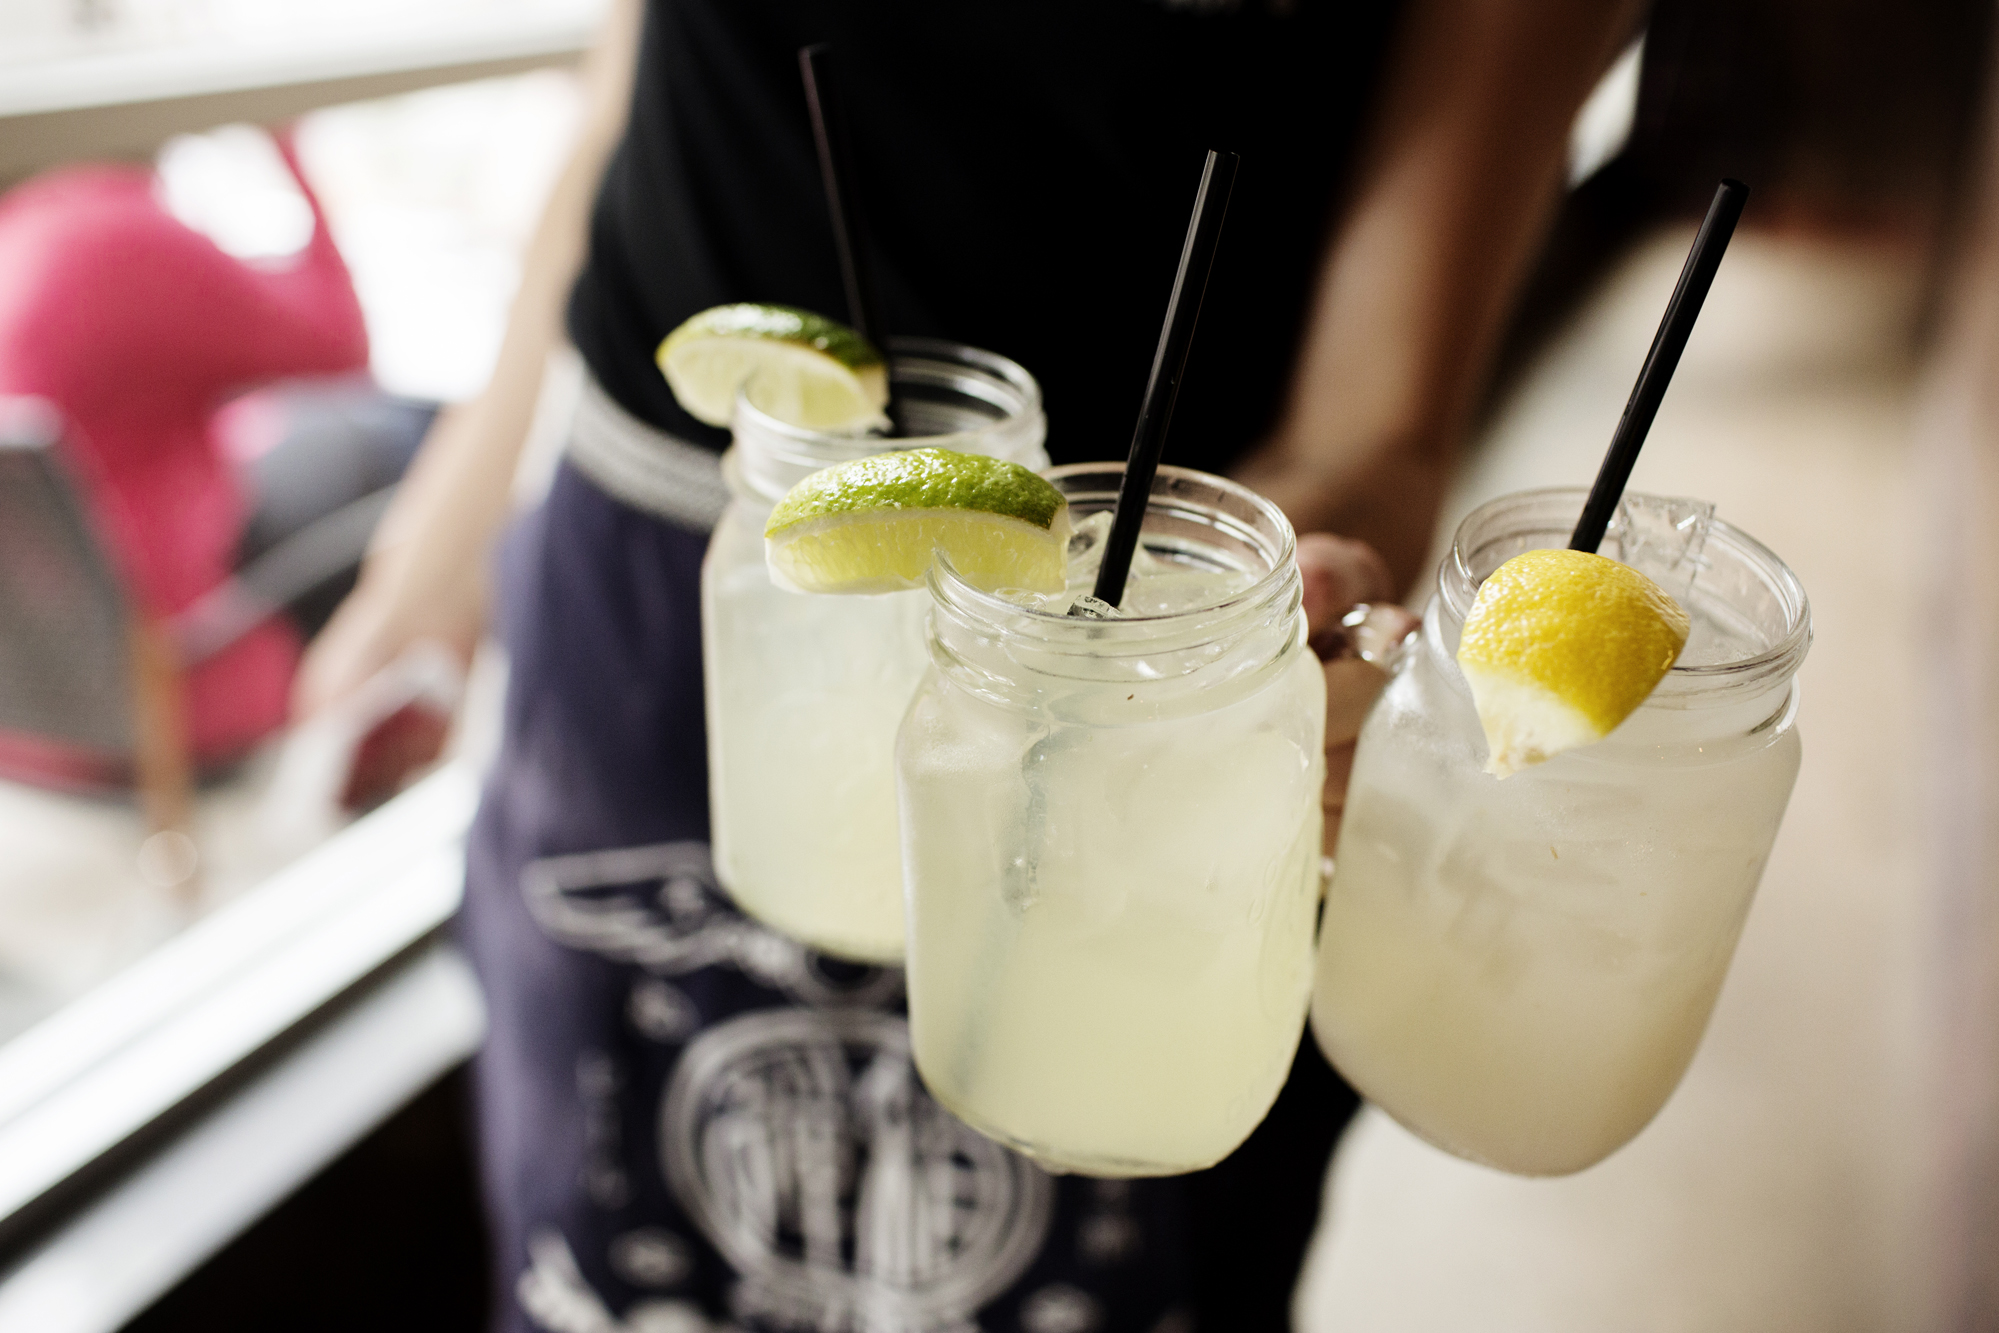 Mason jars of lemonade | Zen Box Izakaya | The Restaurant Project